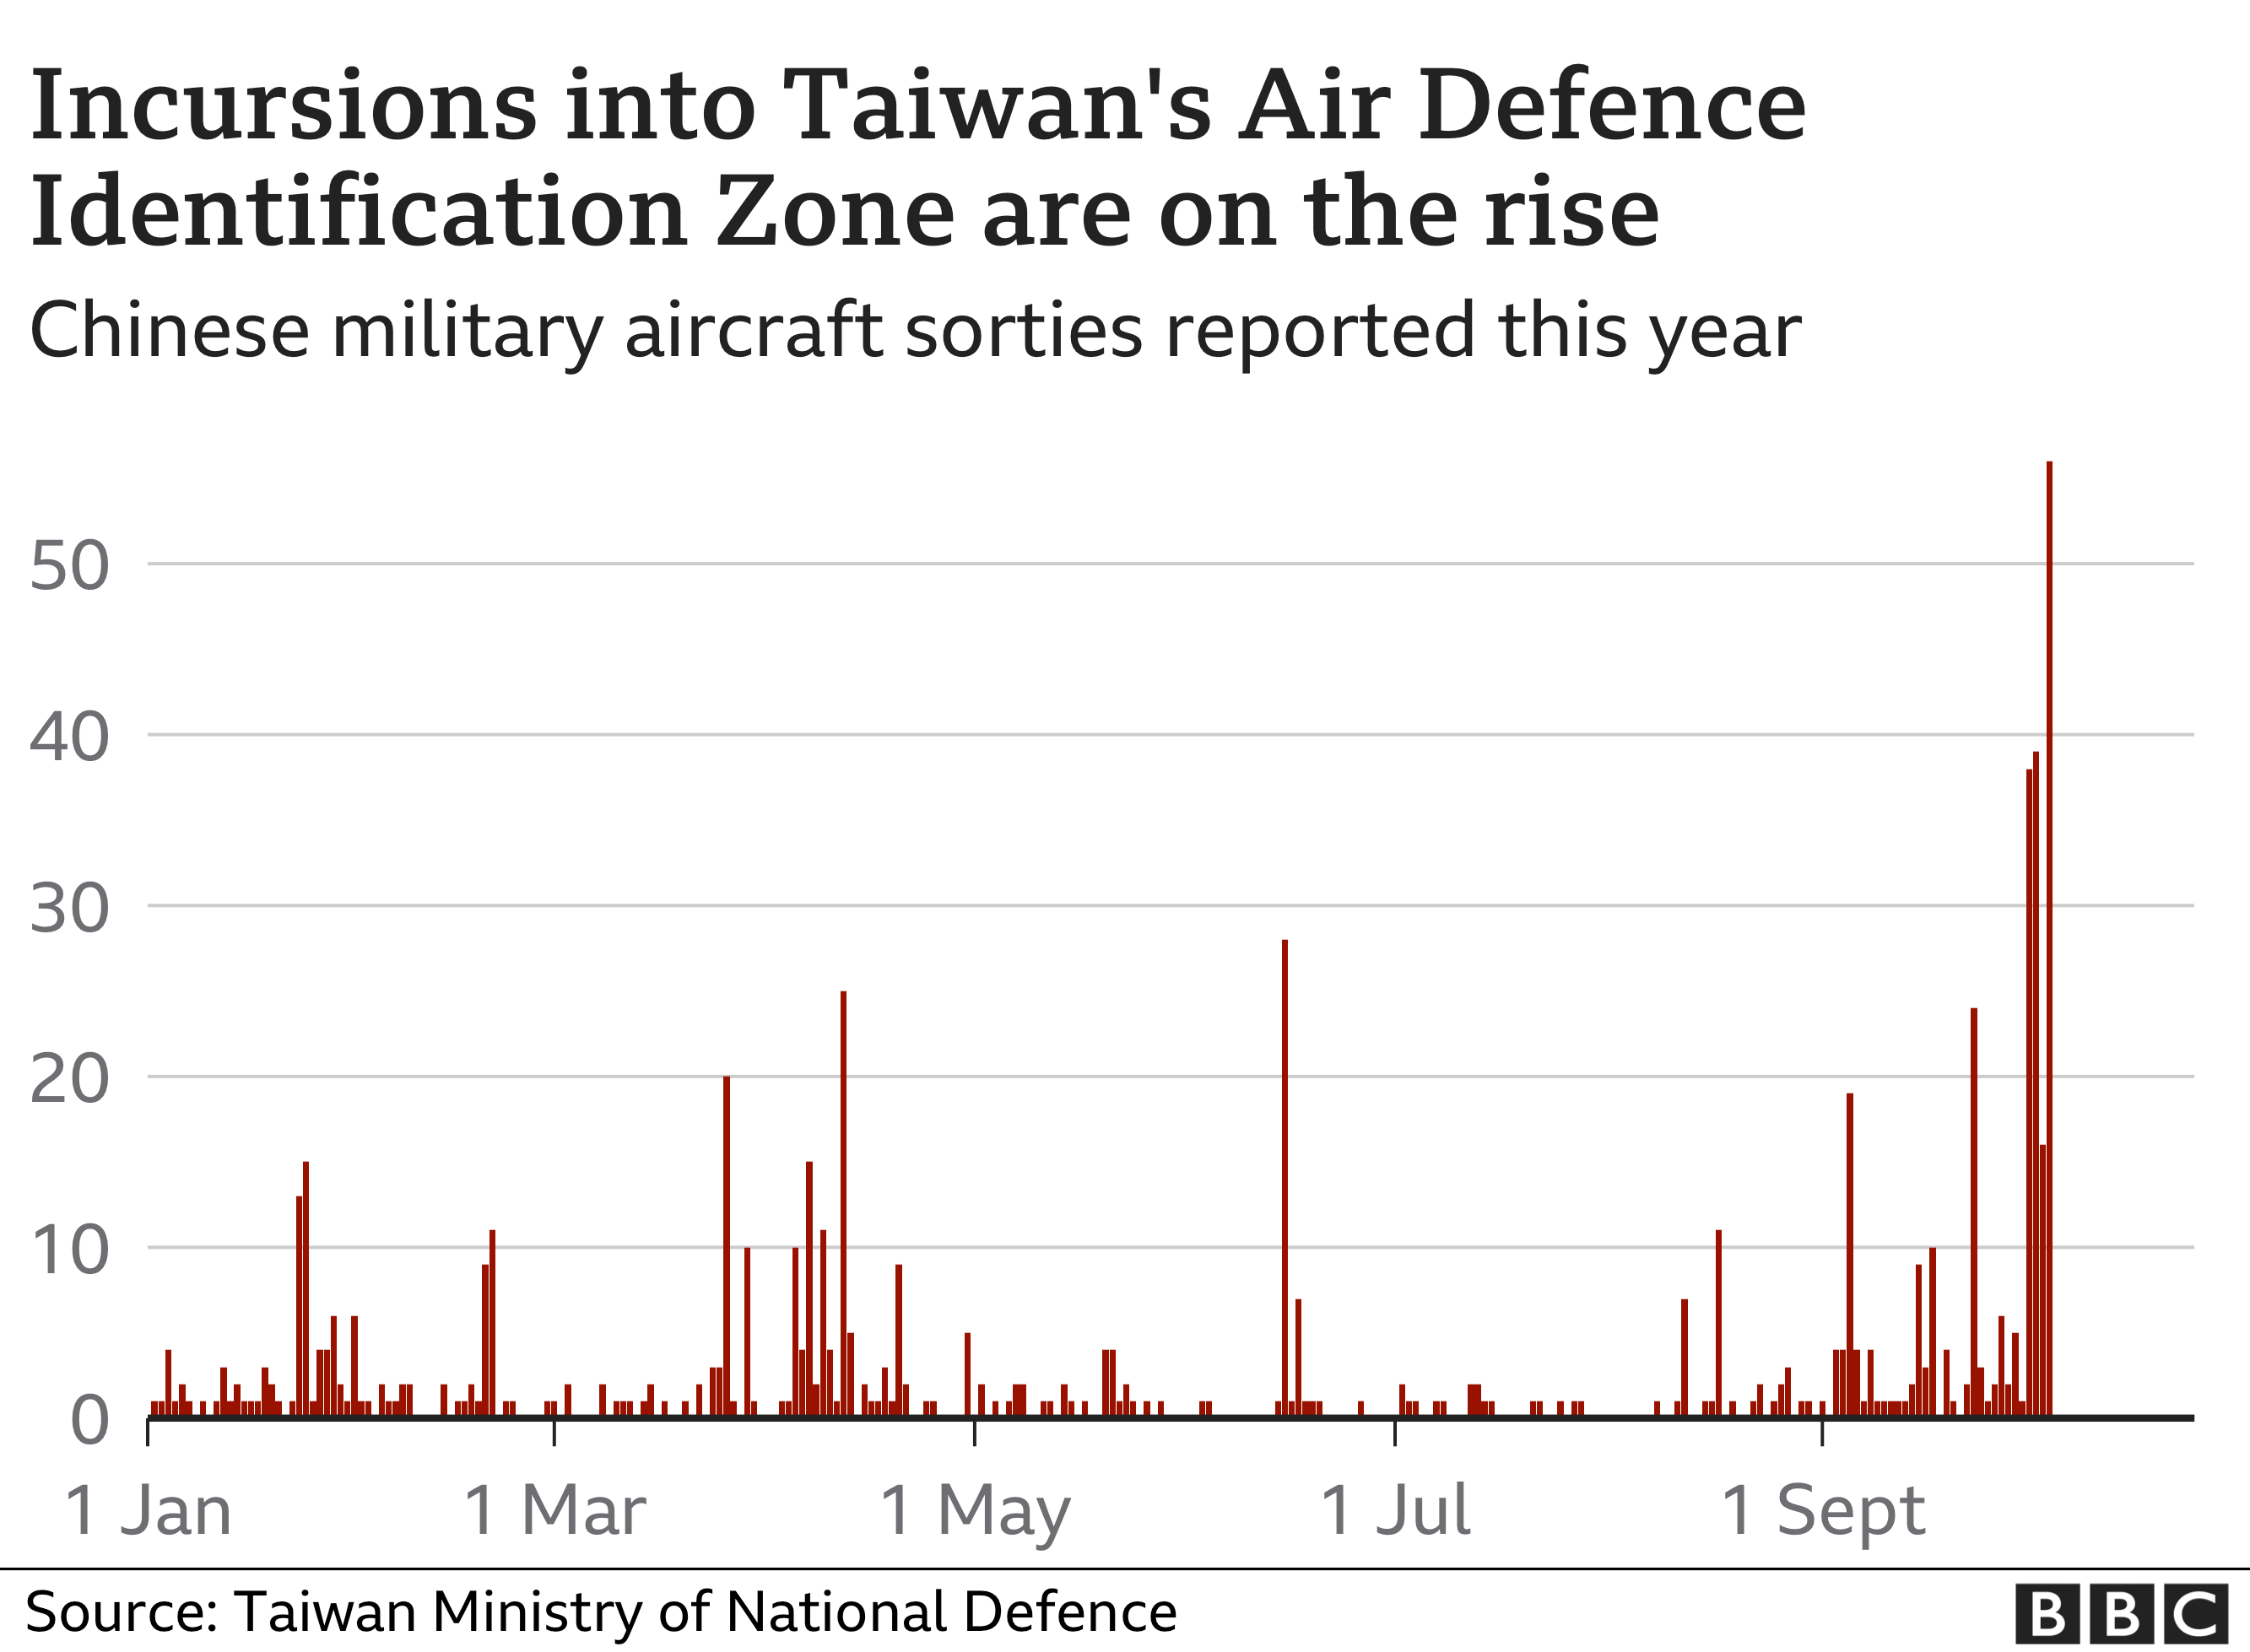 Incursions into Taiwan's aid defence zone